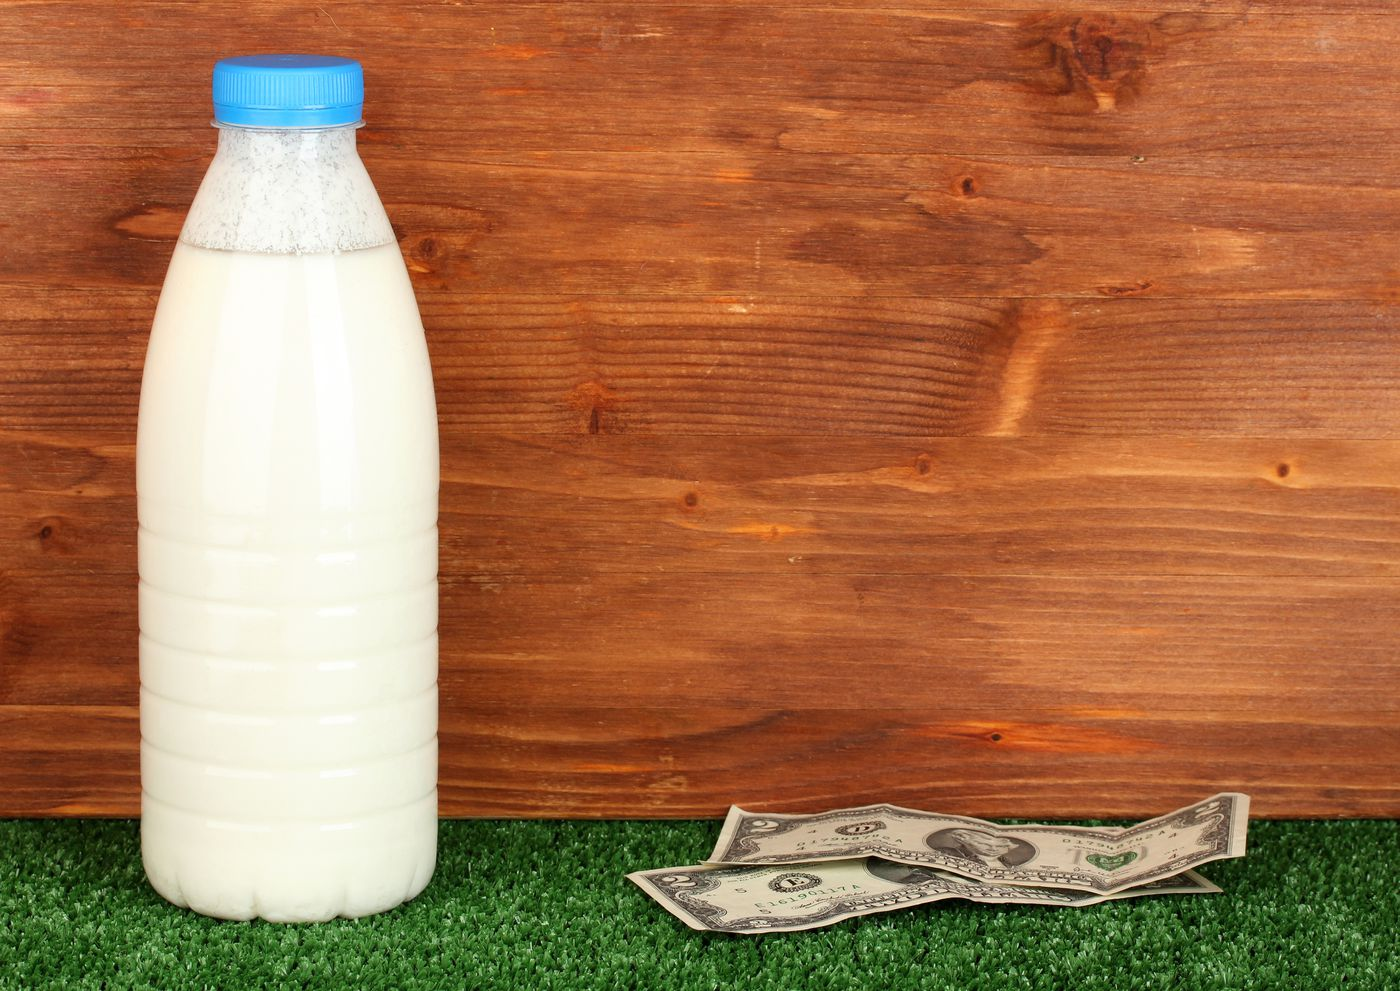 """Why dairy producers are claiming almond milk isn't """"milk"""" - Vox"""